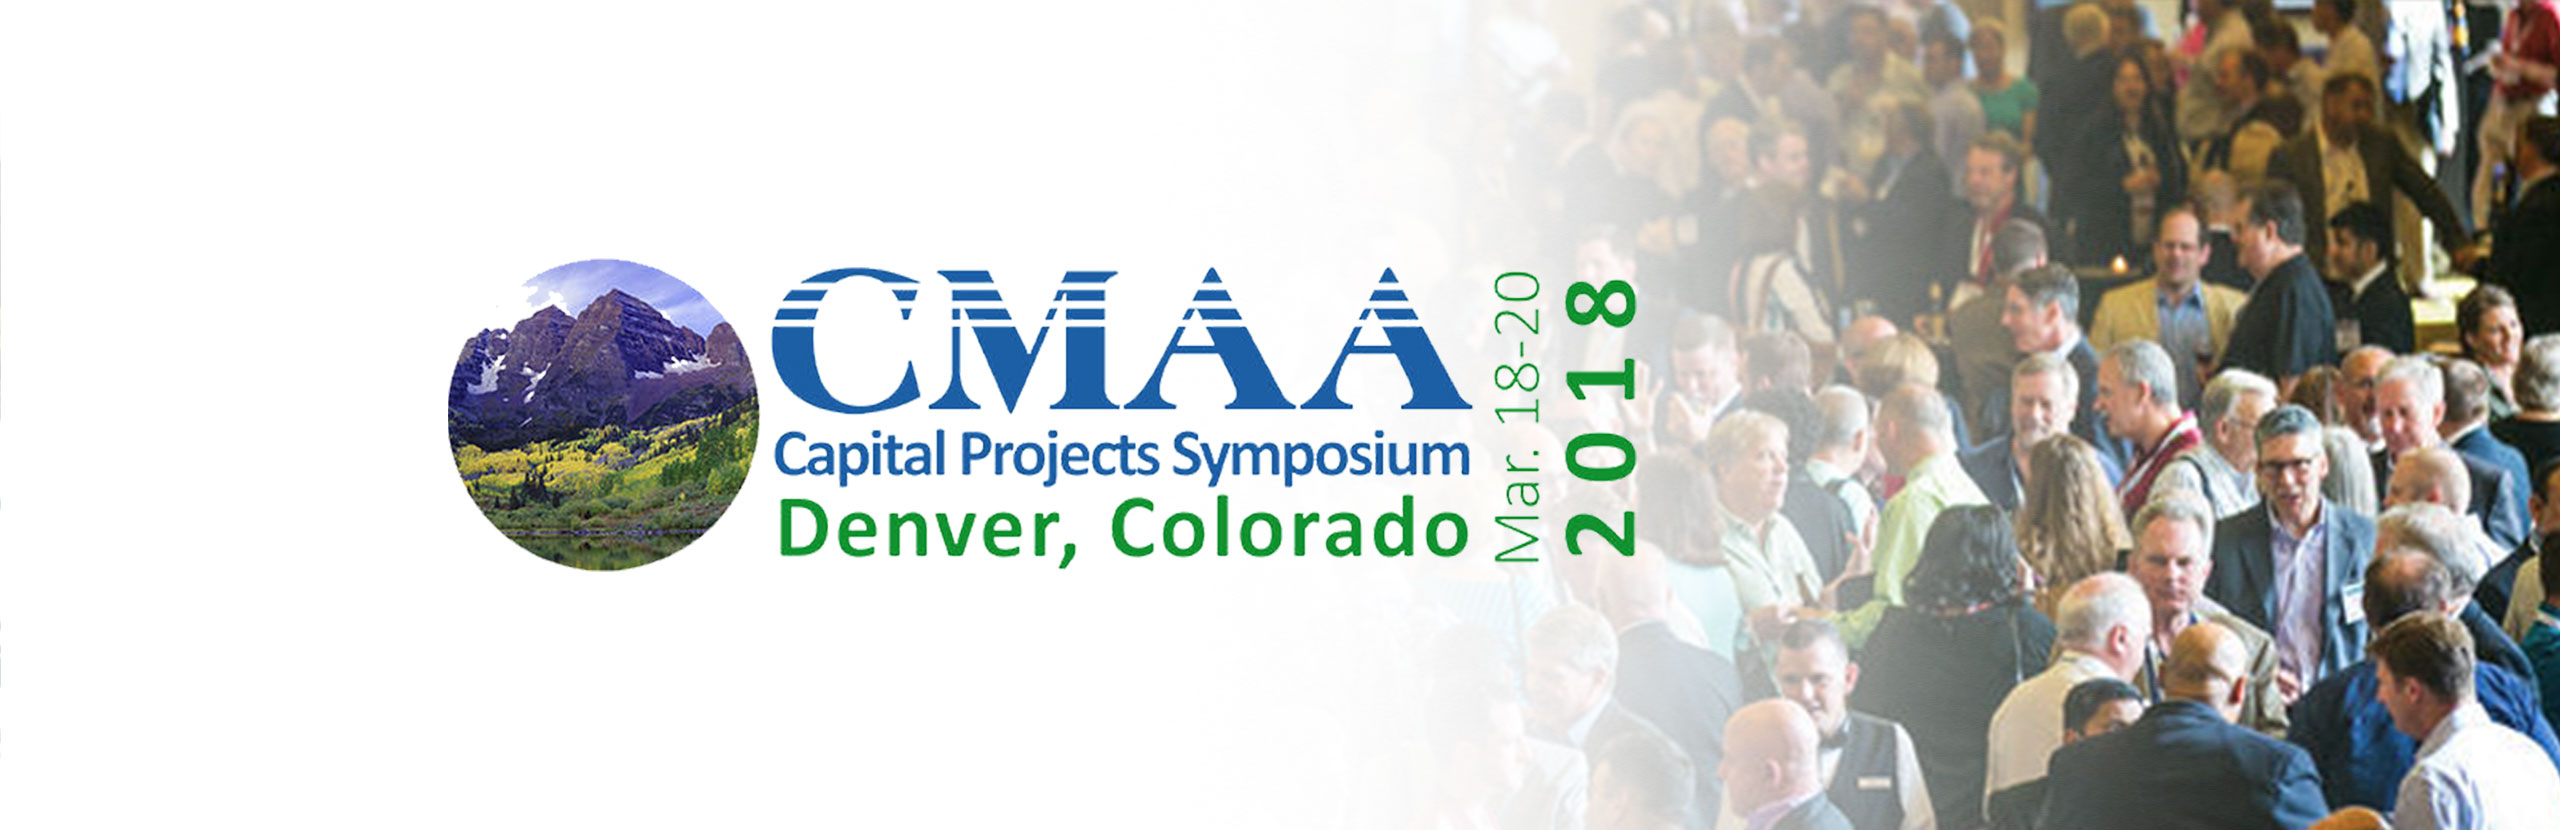 2018 CMAA Capital Projects Symposium